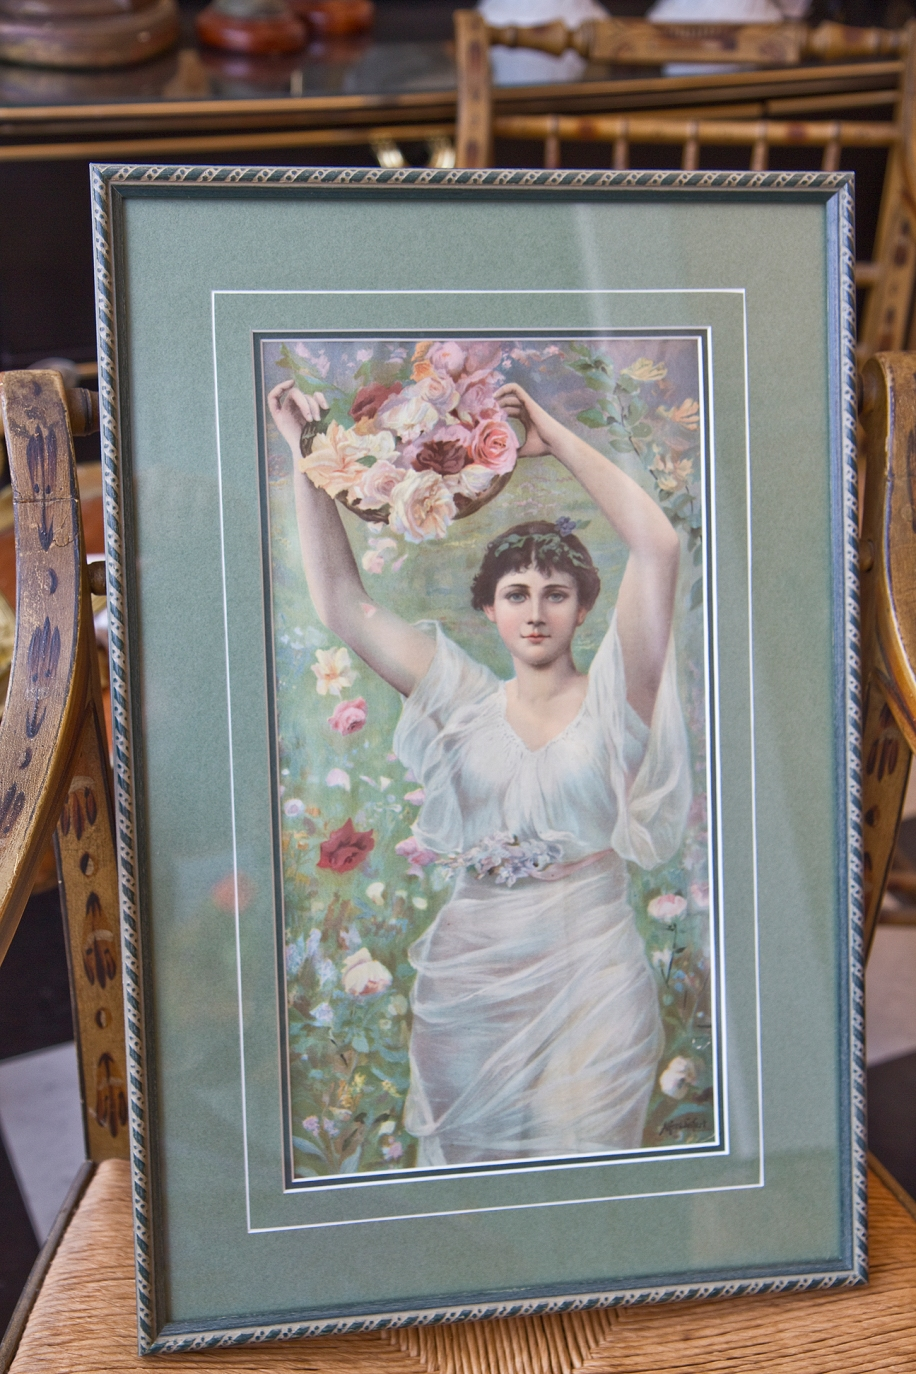 $125 Print of woman holding basket of flowers. Matted and framed.